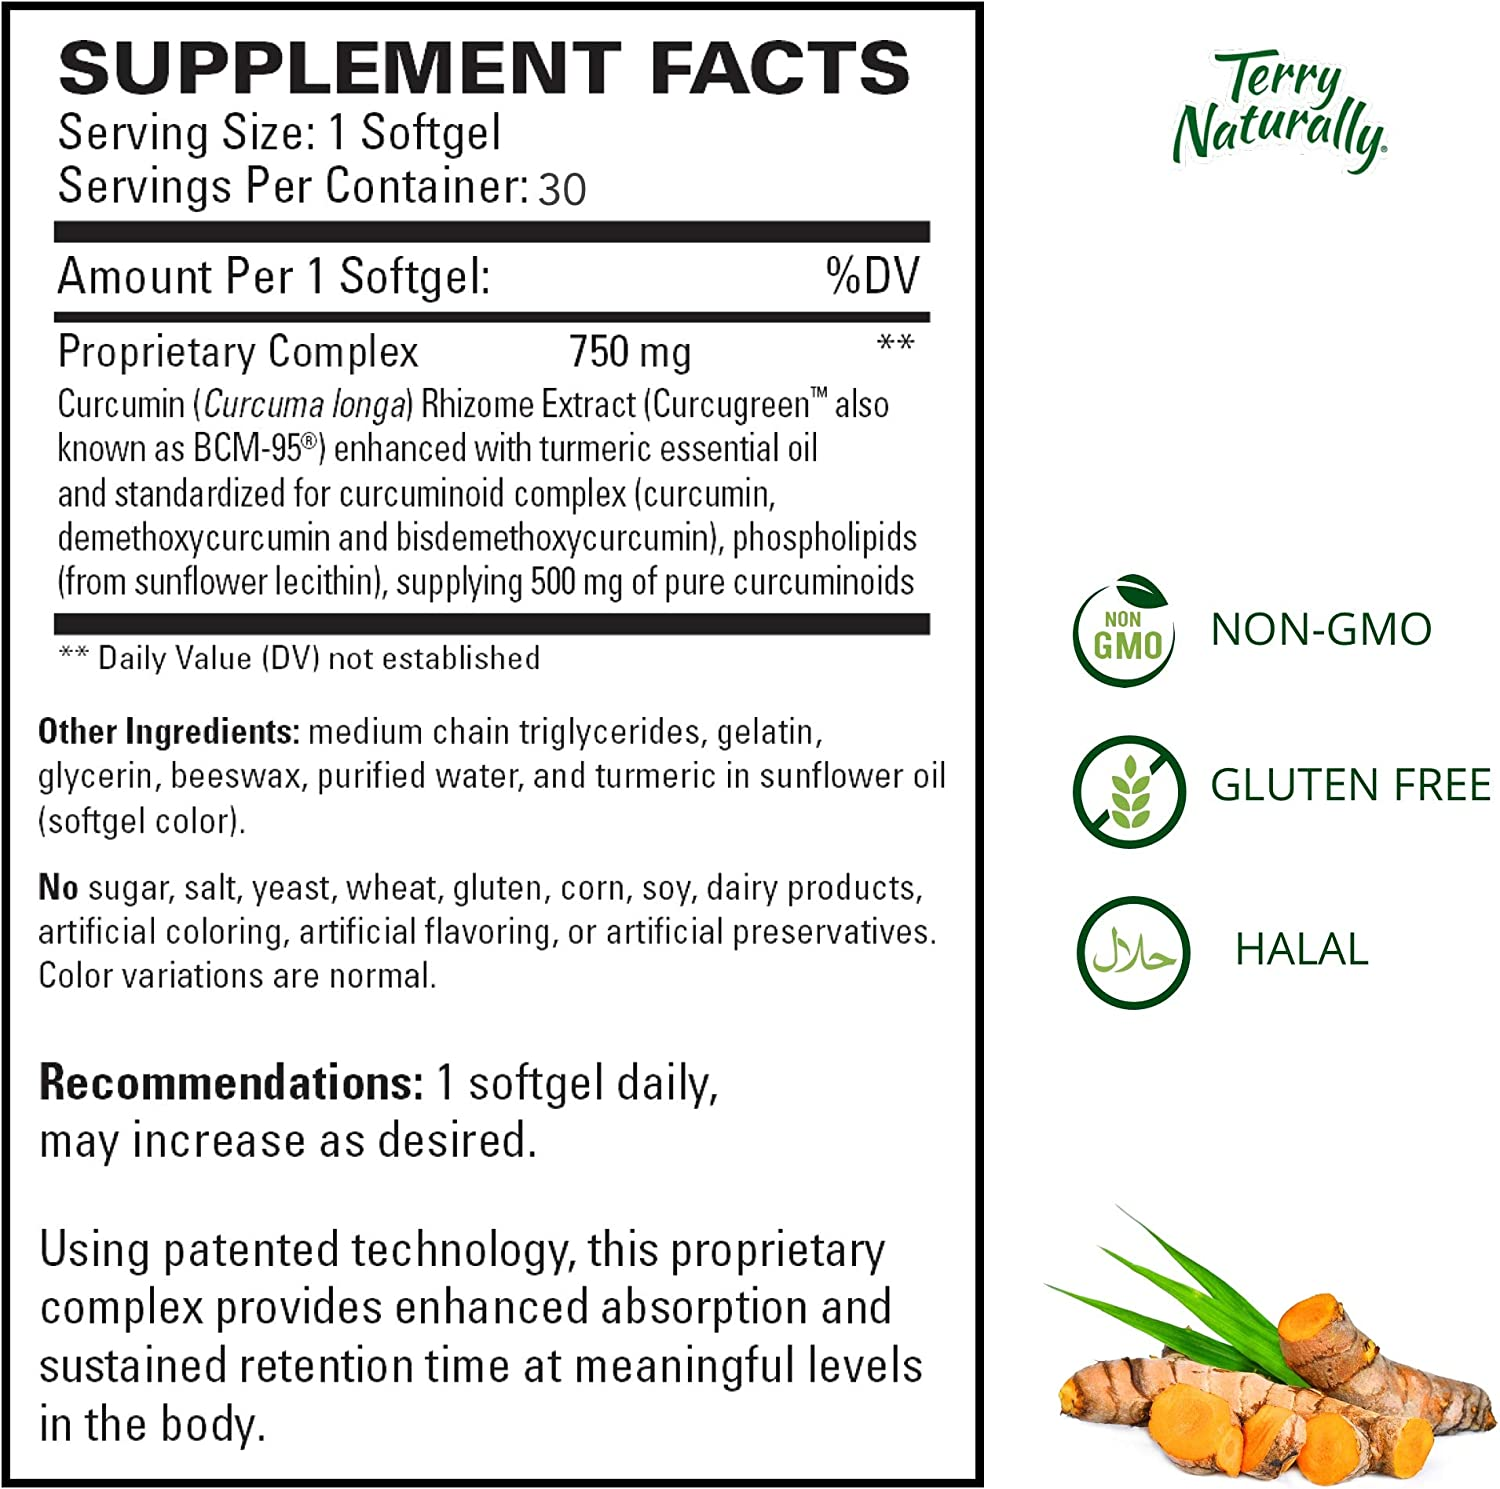 Terry Naturally CuraMed 750 mg - 30 Softgels - Superior Absorption BCM-95 Curcumin Supplement with Turmeric, Promotes Healthy Inflammation Response - Non-GMO, Gluten-Free, Halal - 30 Servings: Health & Personal Care